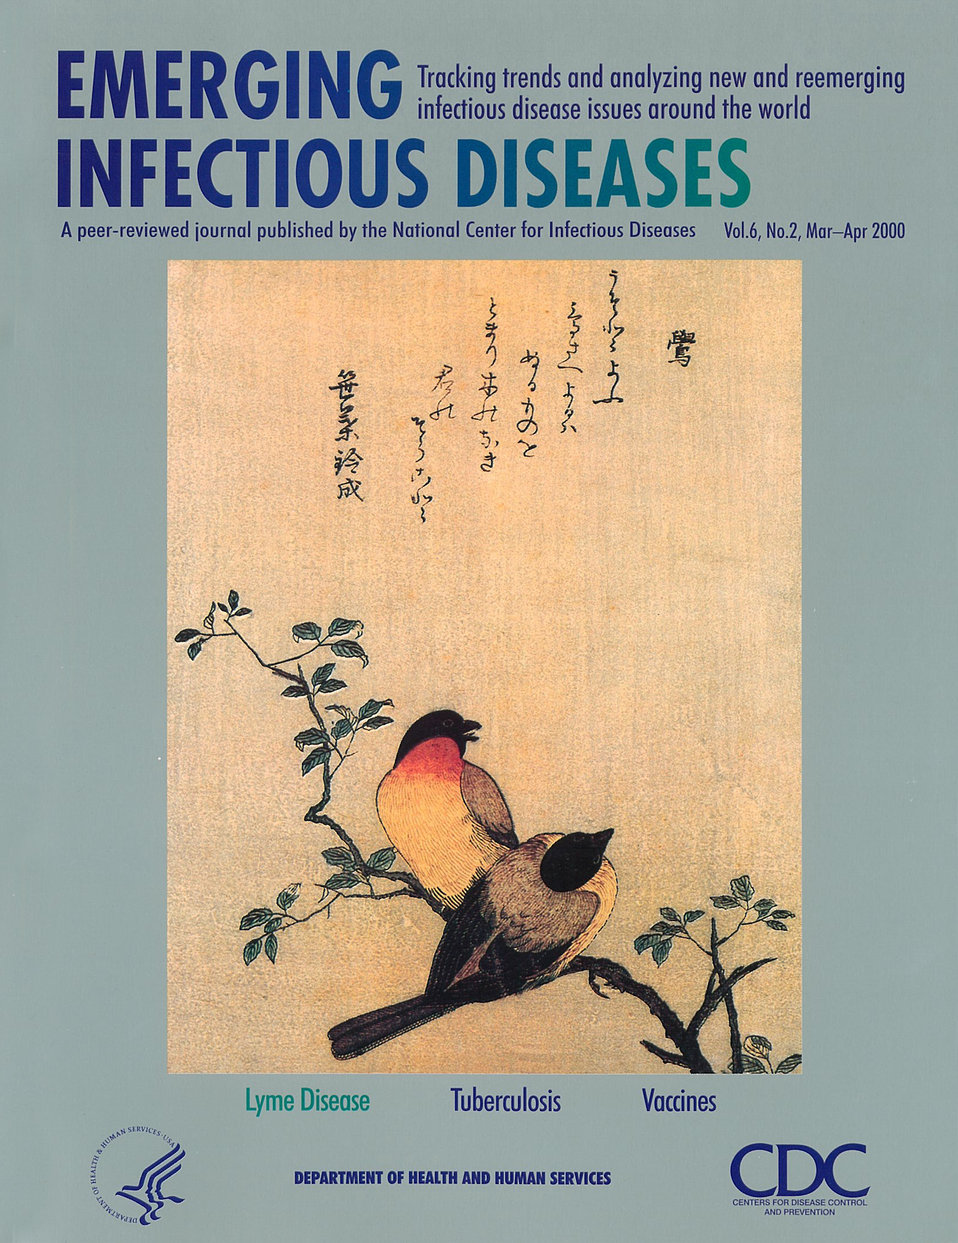 Emerging Infectious Diseases (EID) cover artwork for Volume 6, Number 2, March-April 2000 issue.